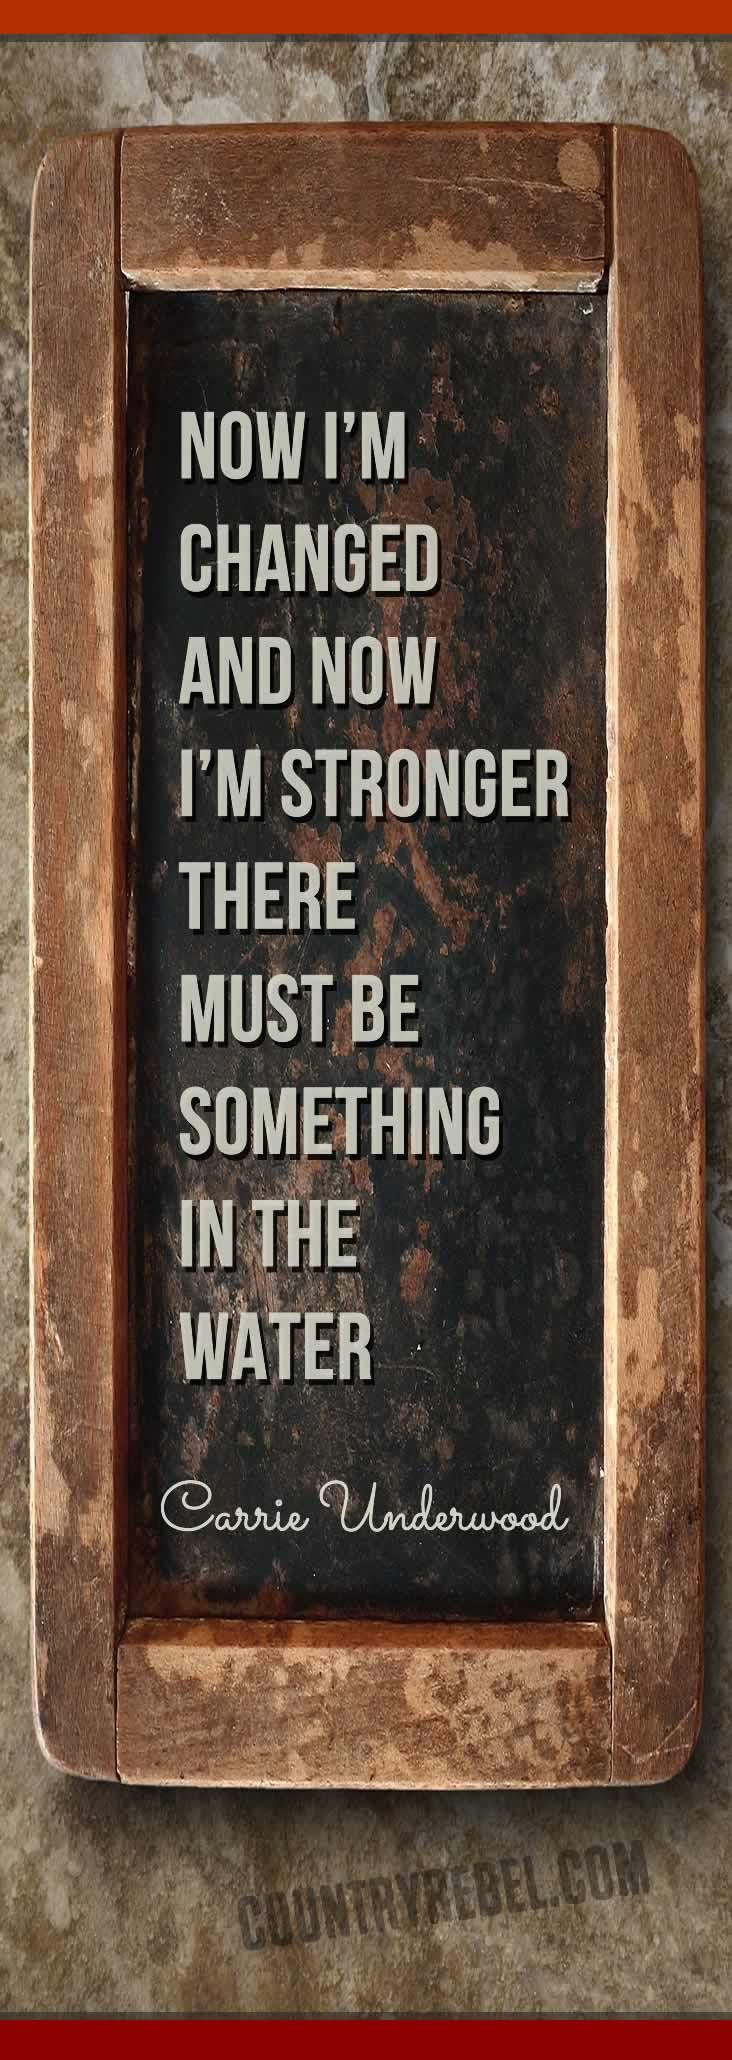 Carrie Underwood Lyrics - Something In the Water | Country Music VIDEO at Country Rebel >> http://countryrebel.com/blogs/videos/18194131-carrie-underwood-something-in-the-water